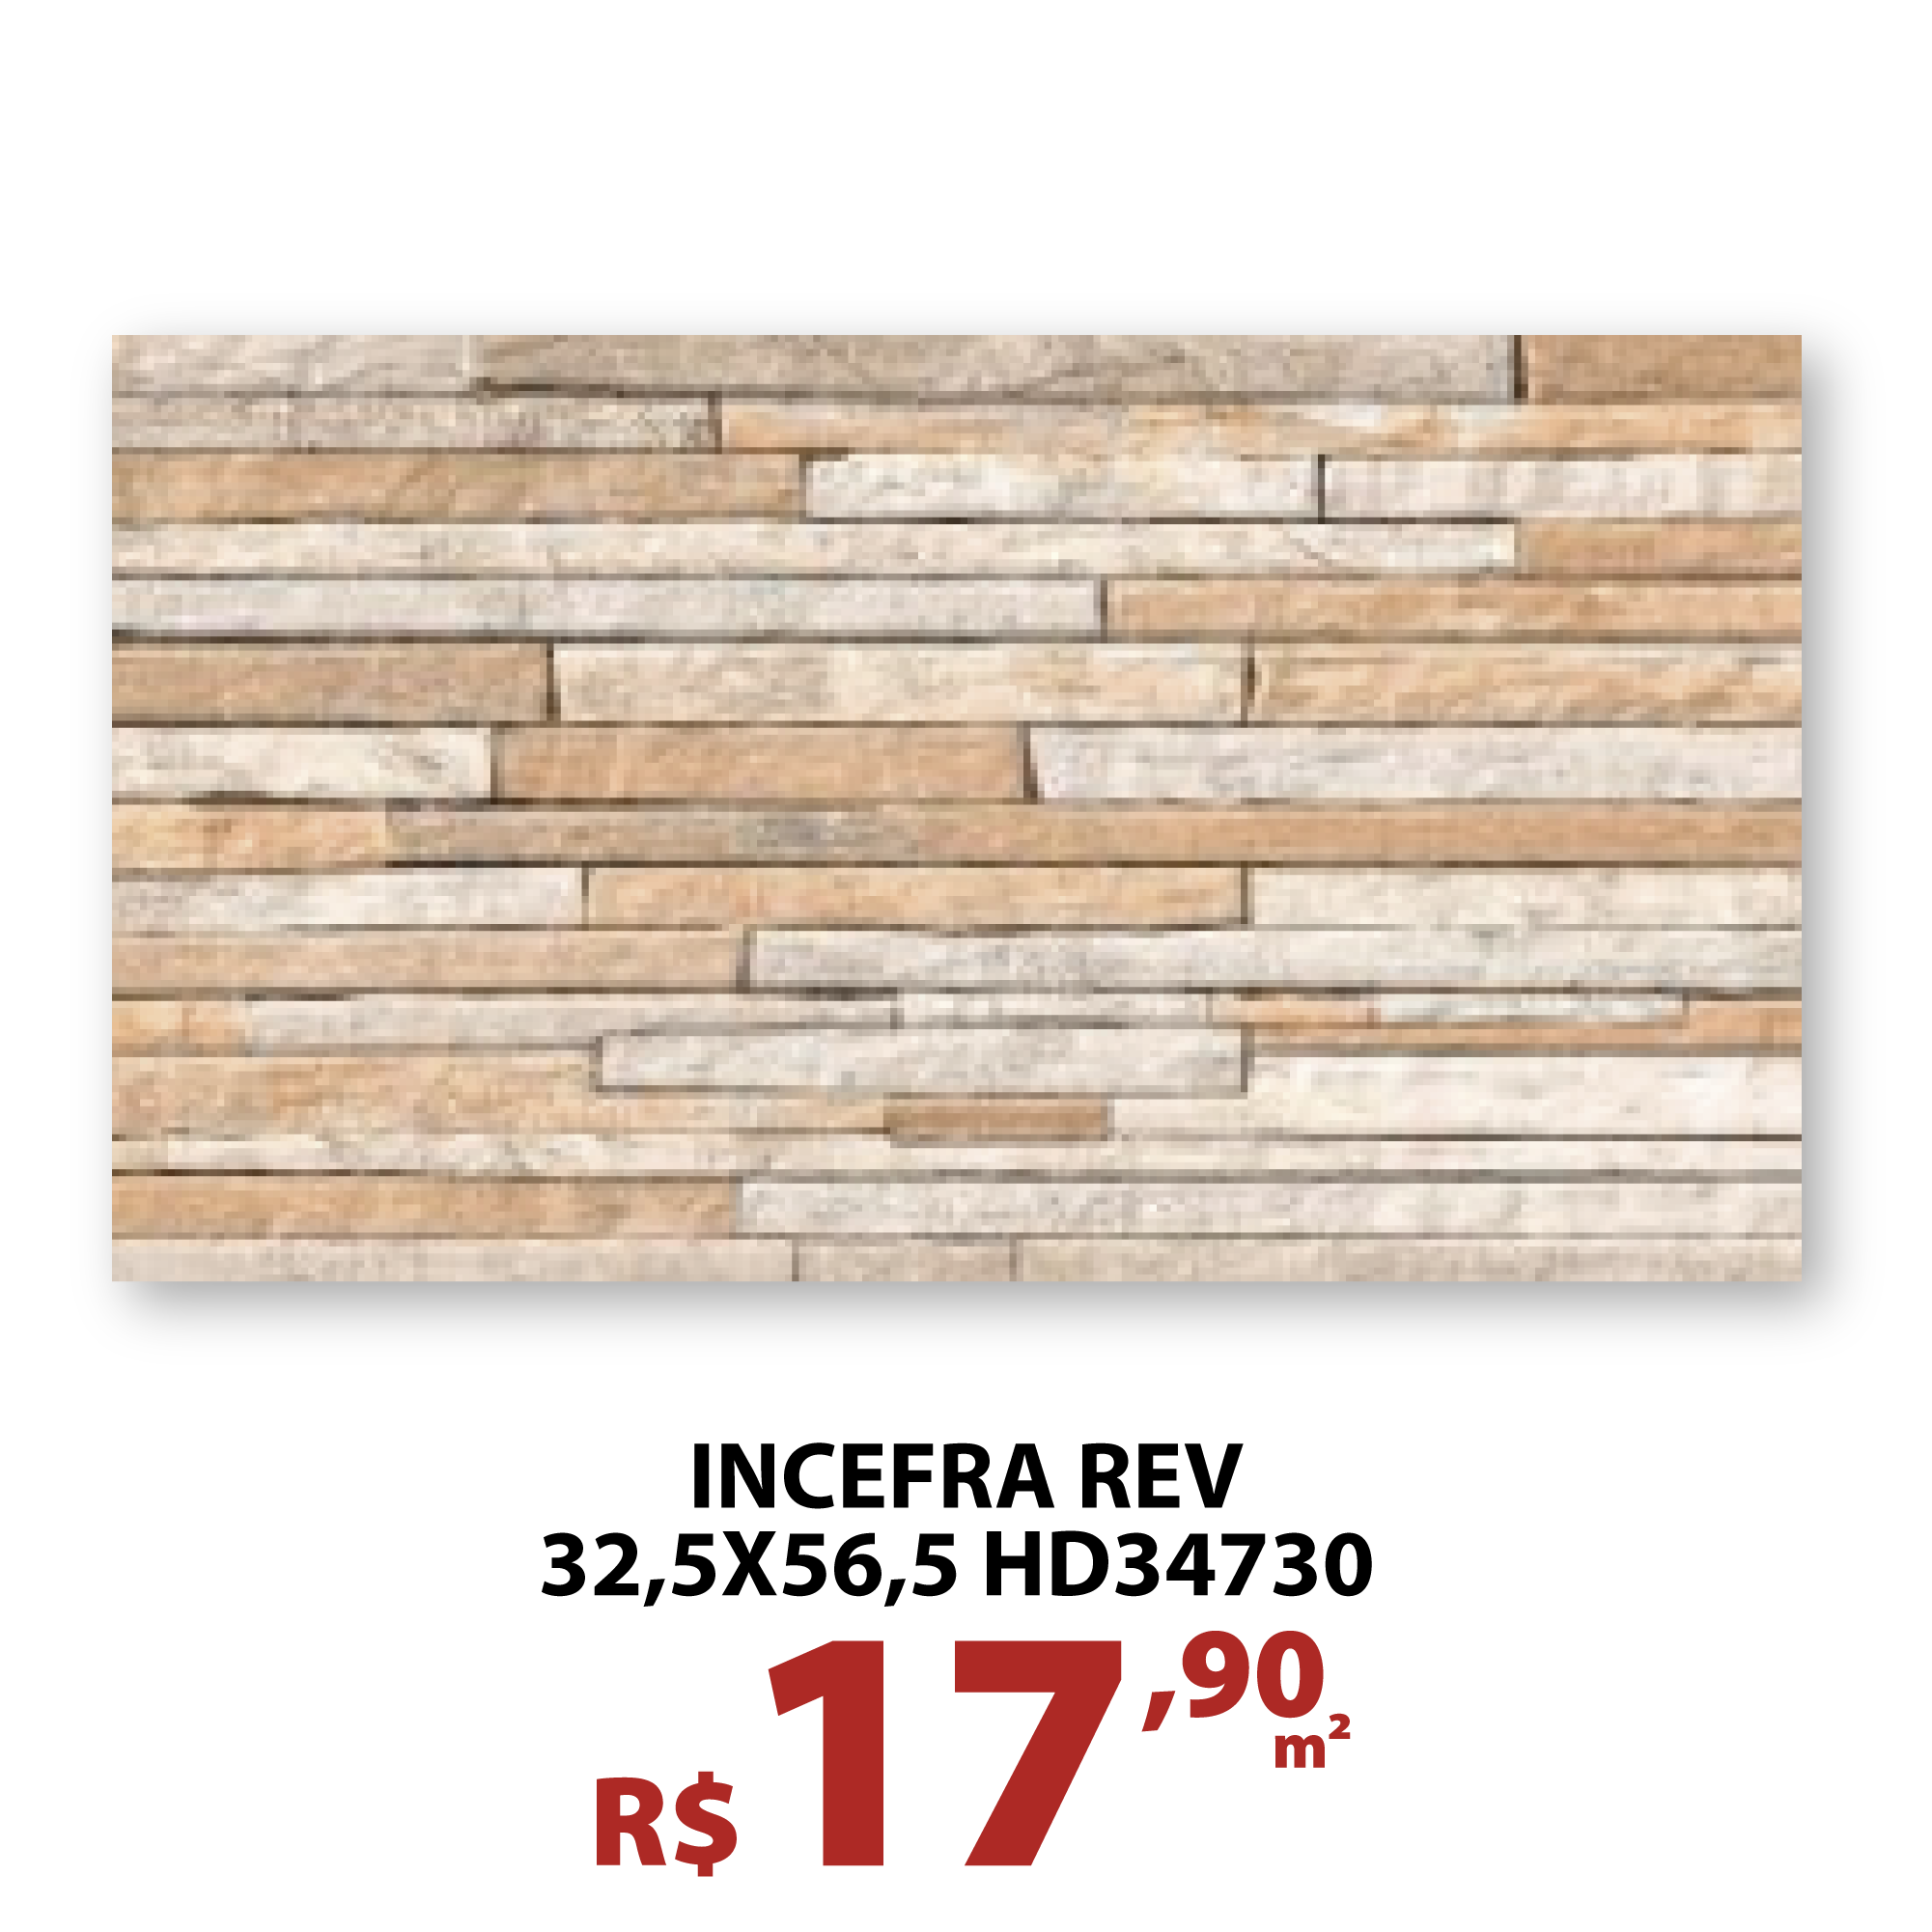 INCEFRA REV 32,5X56,5 HD34730